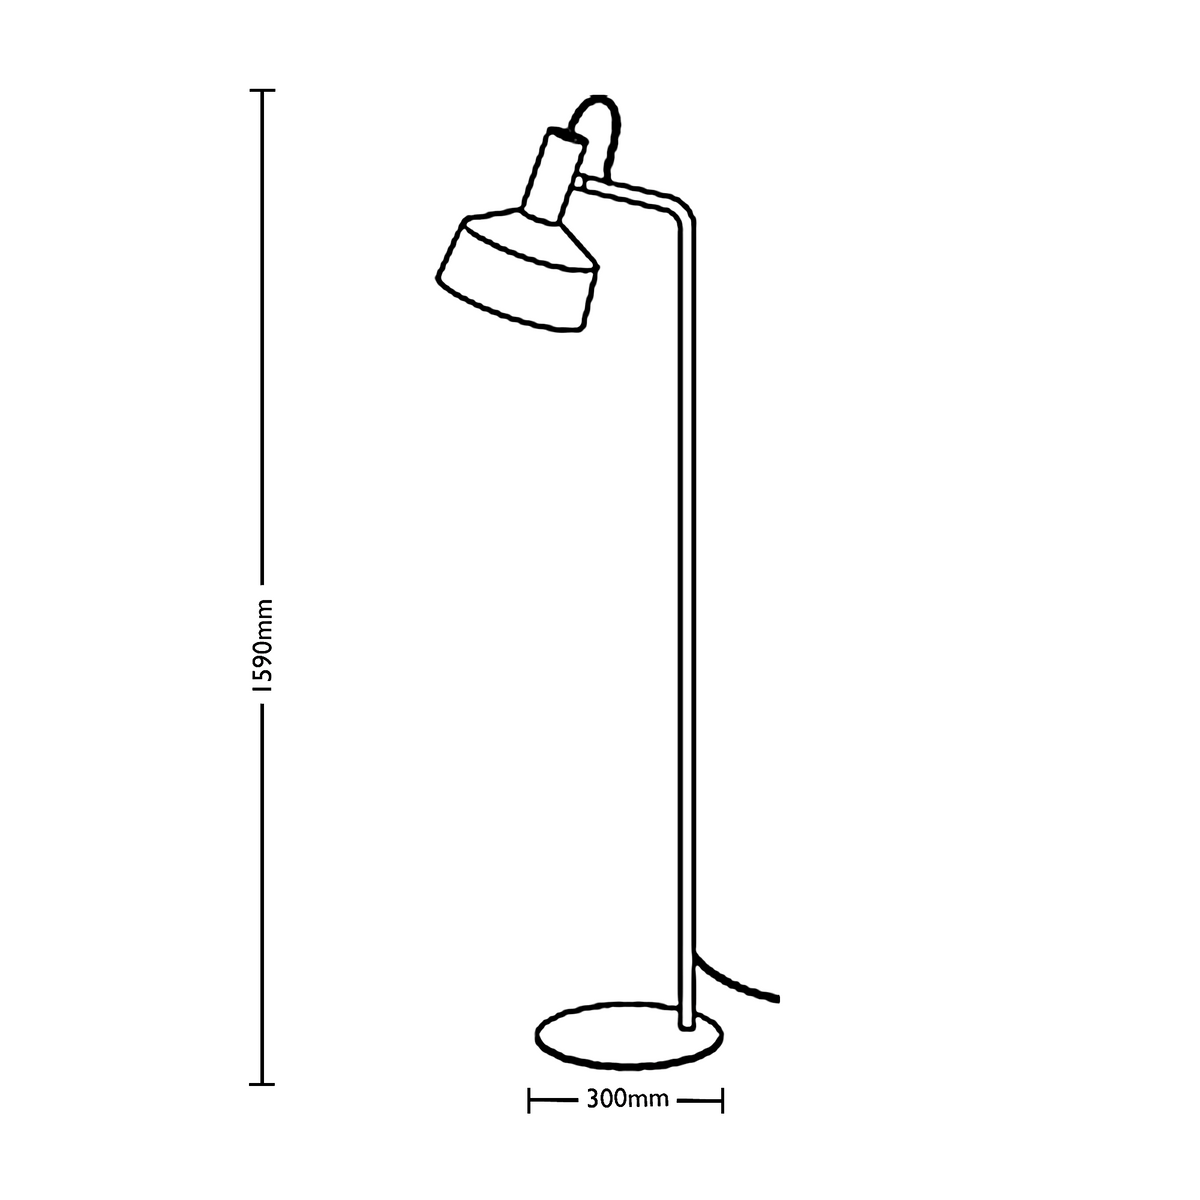 Dimensions for Wever&Ducre Office Roomor Floor Lamp